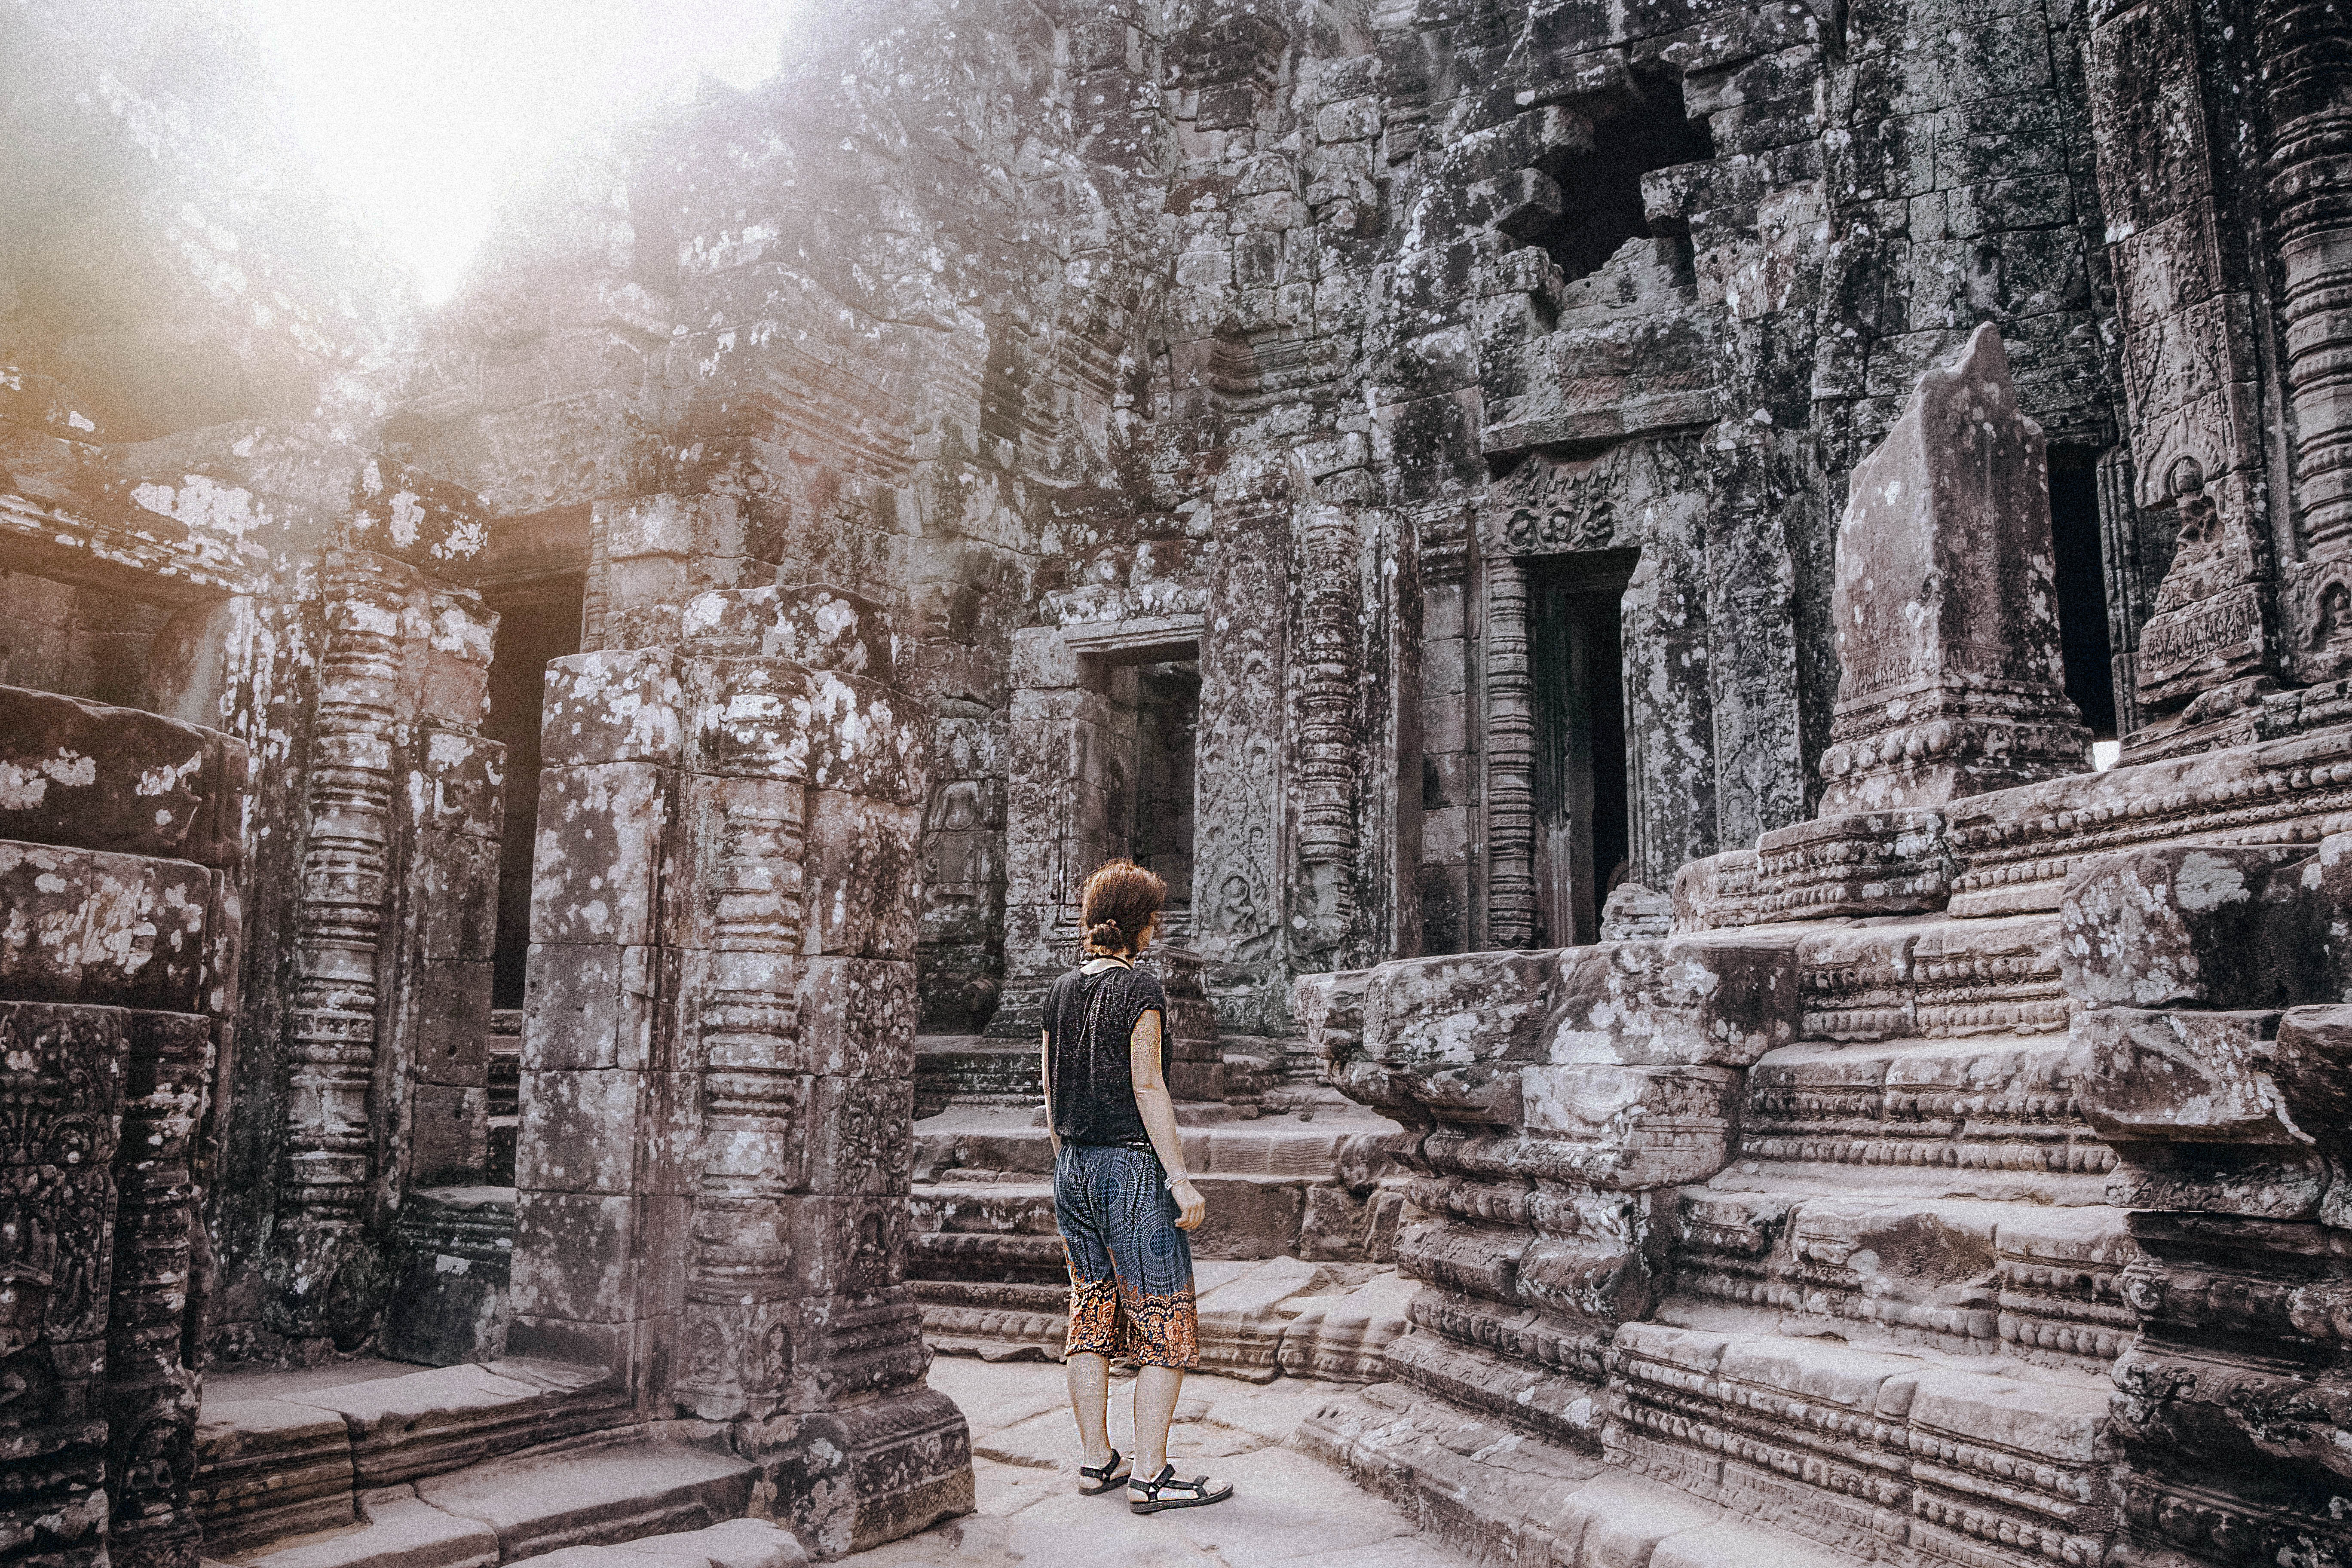 cambodia siem reap exploring ancient temples sunrise